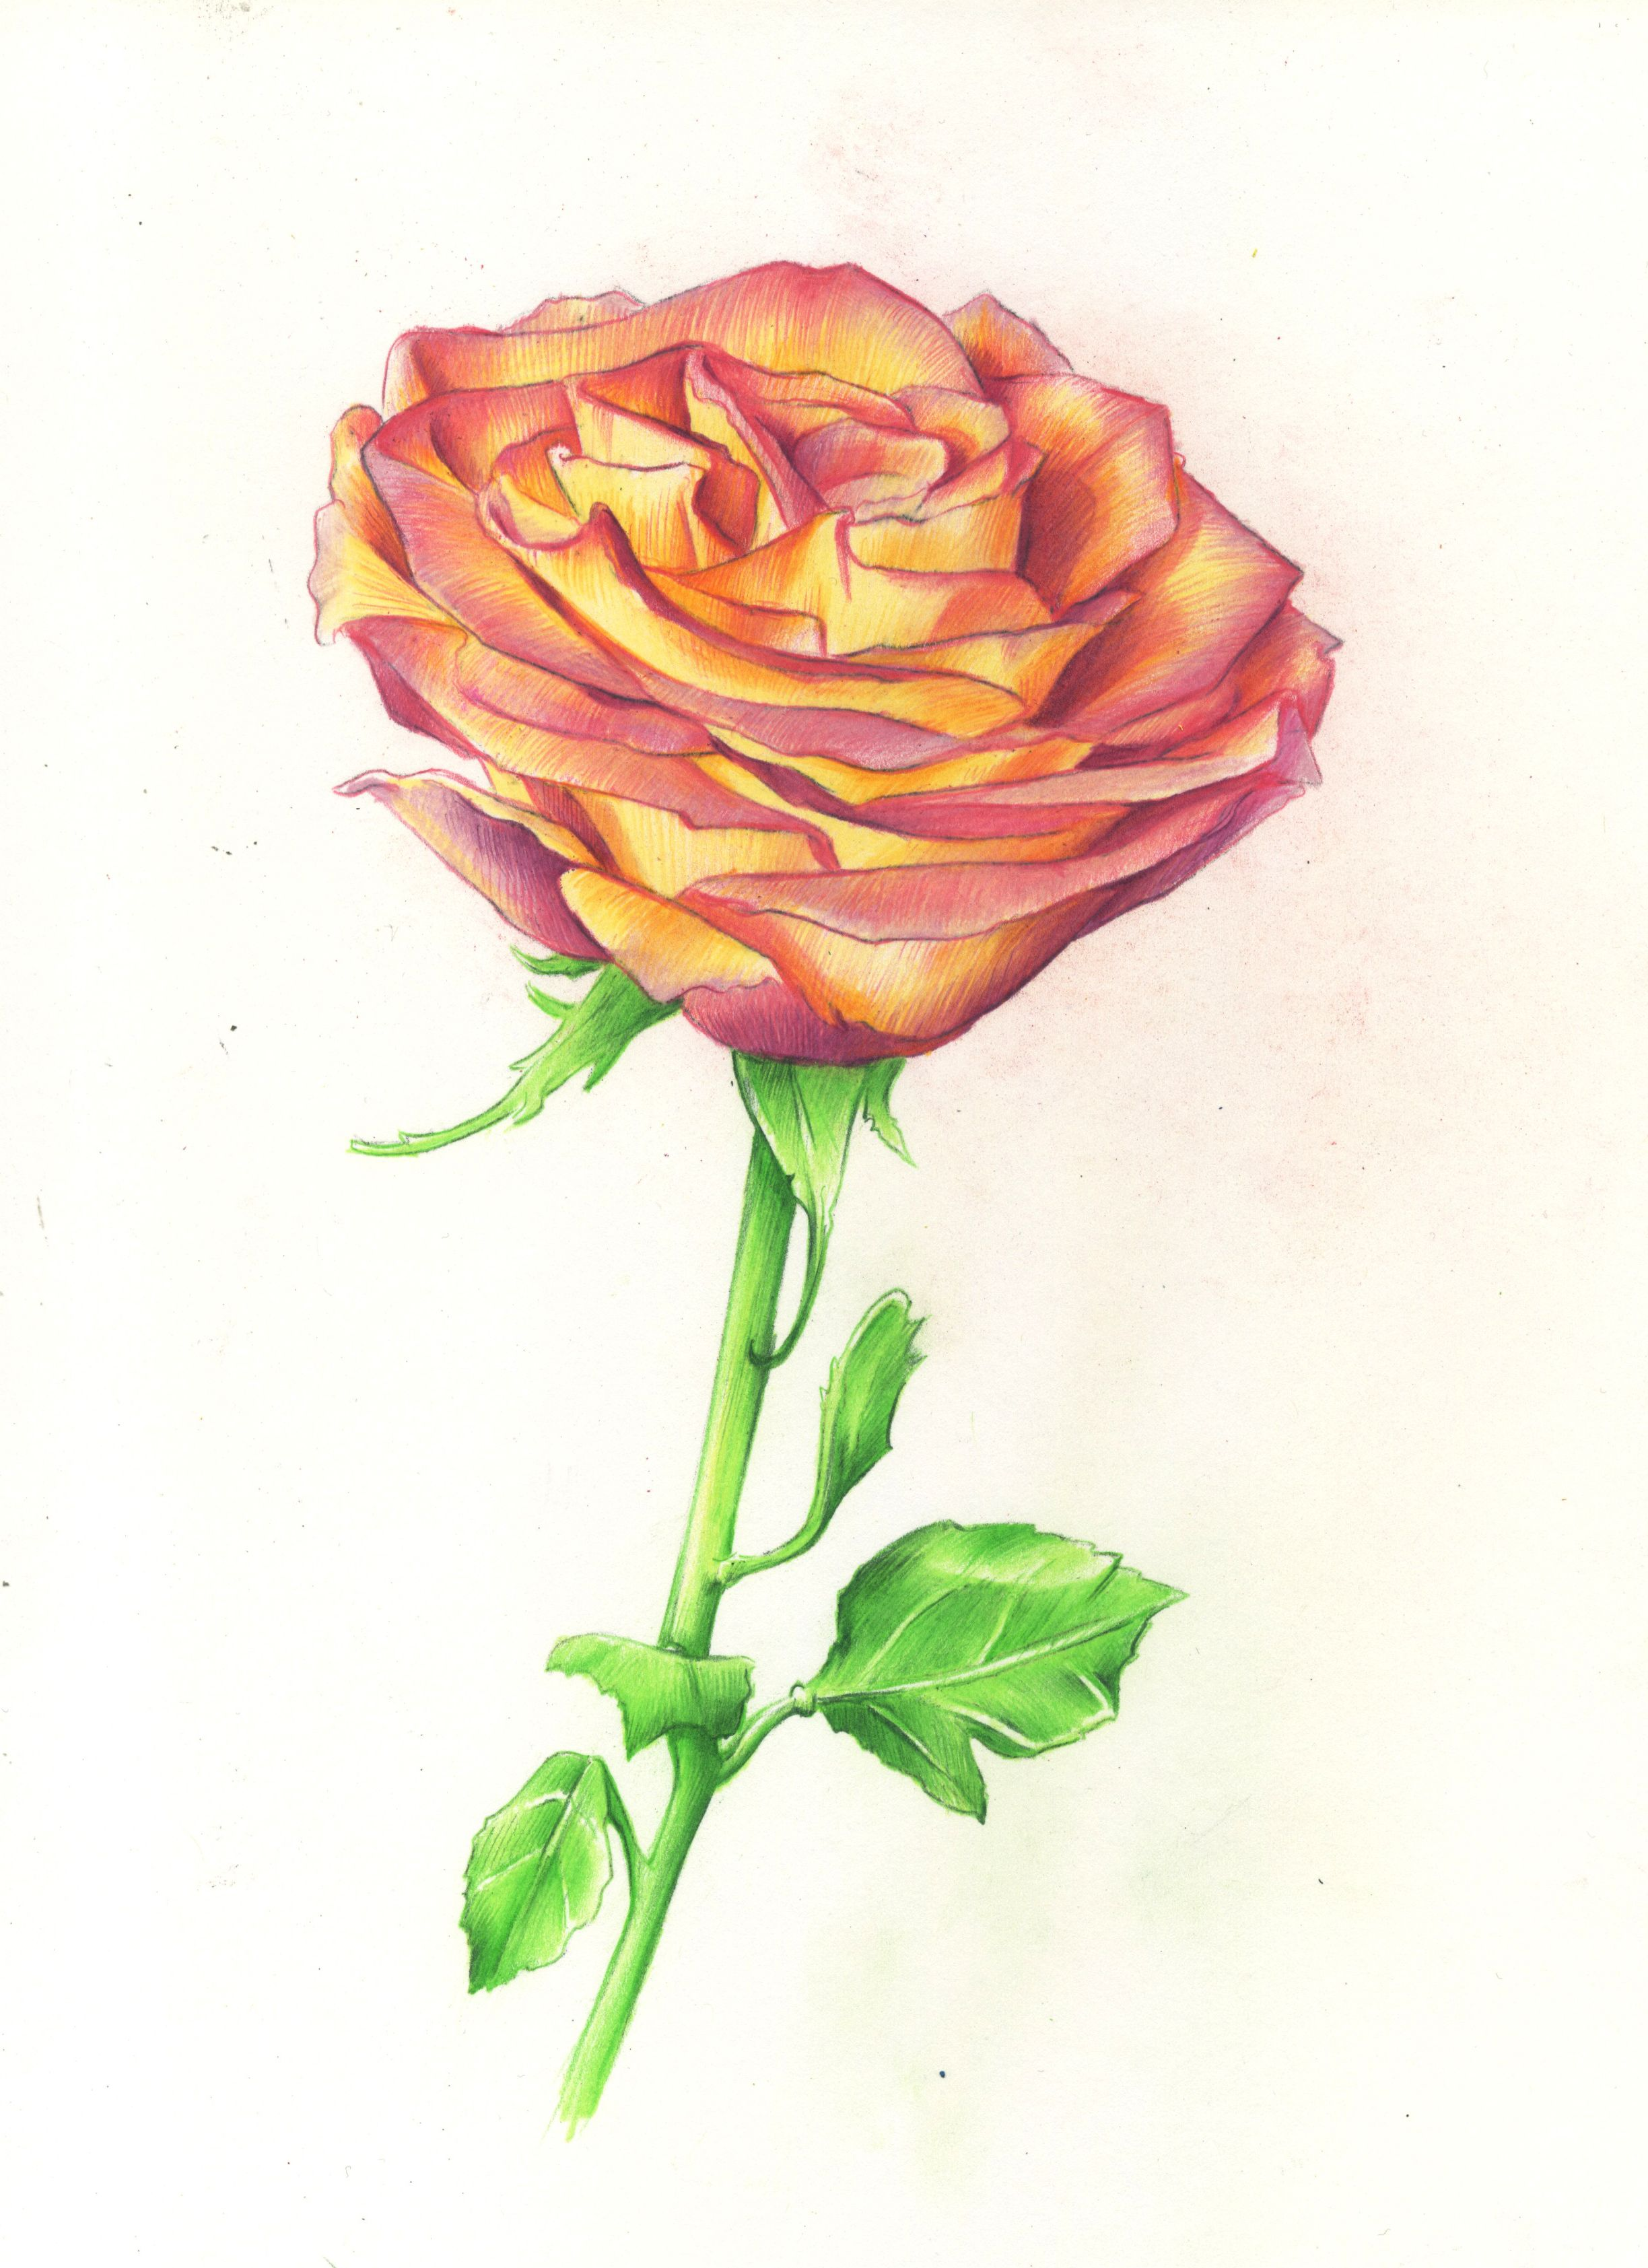 Anime One Red Rose Stalk Pencil Sketch